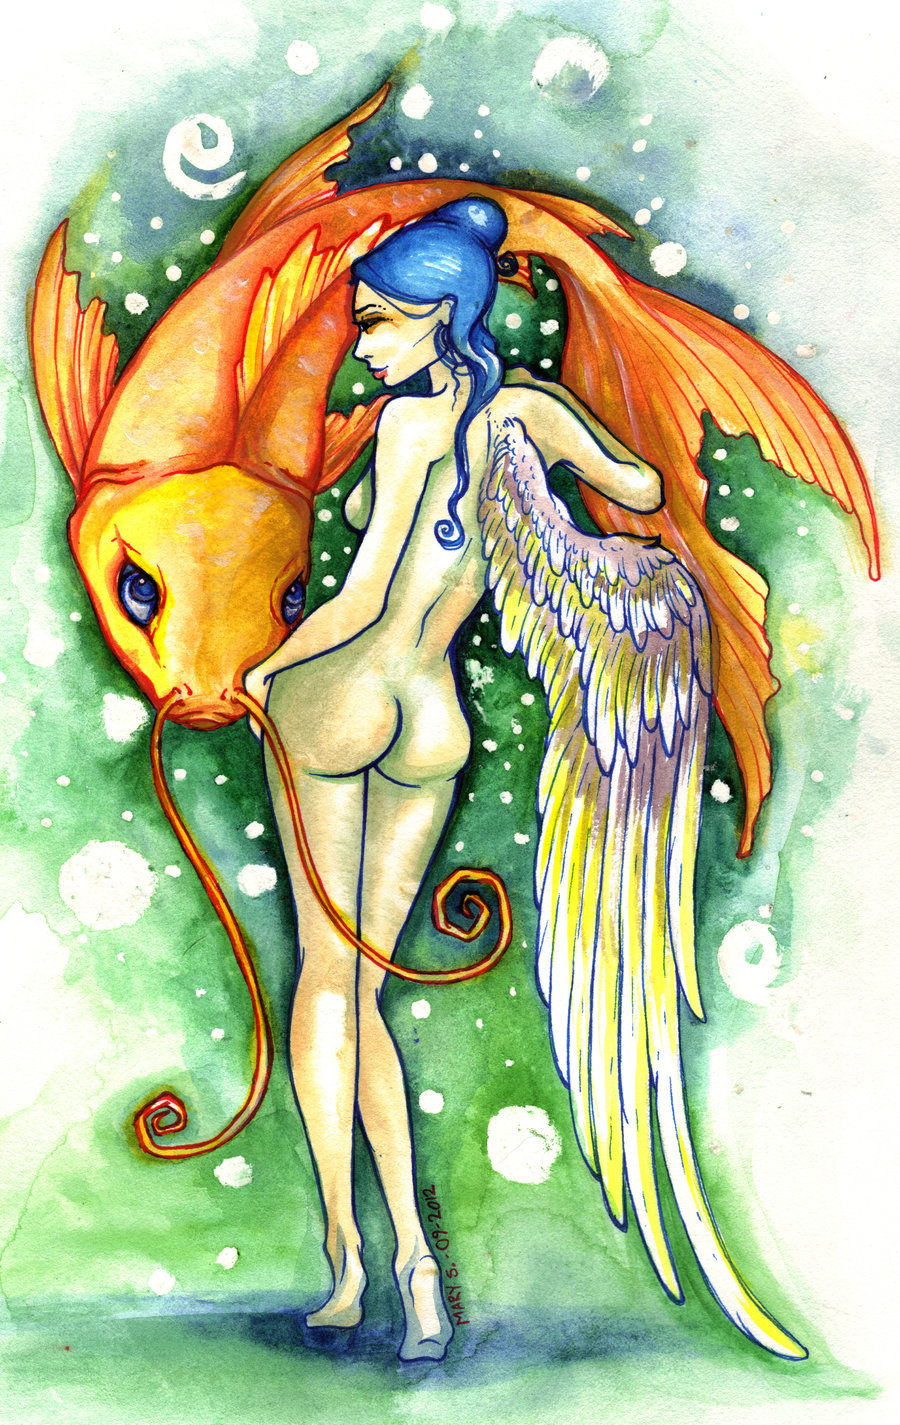 dorsal_angel_with_koi_by_blackmagdalena-d5g6hja